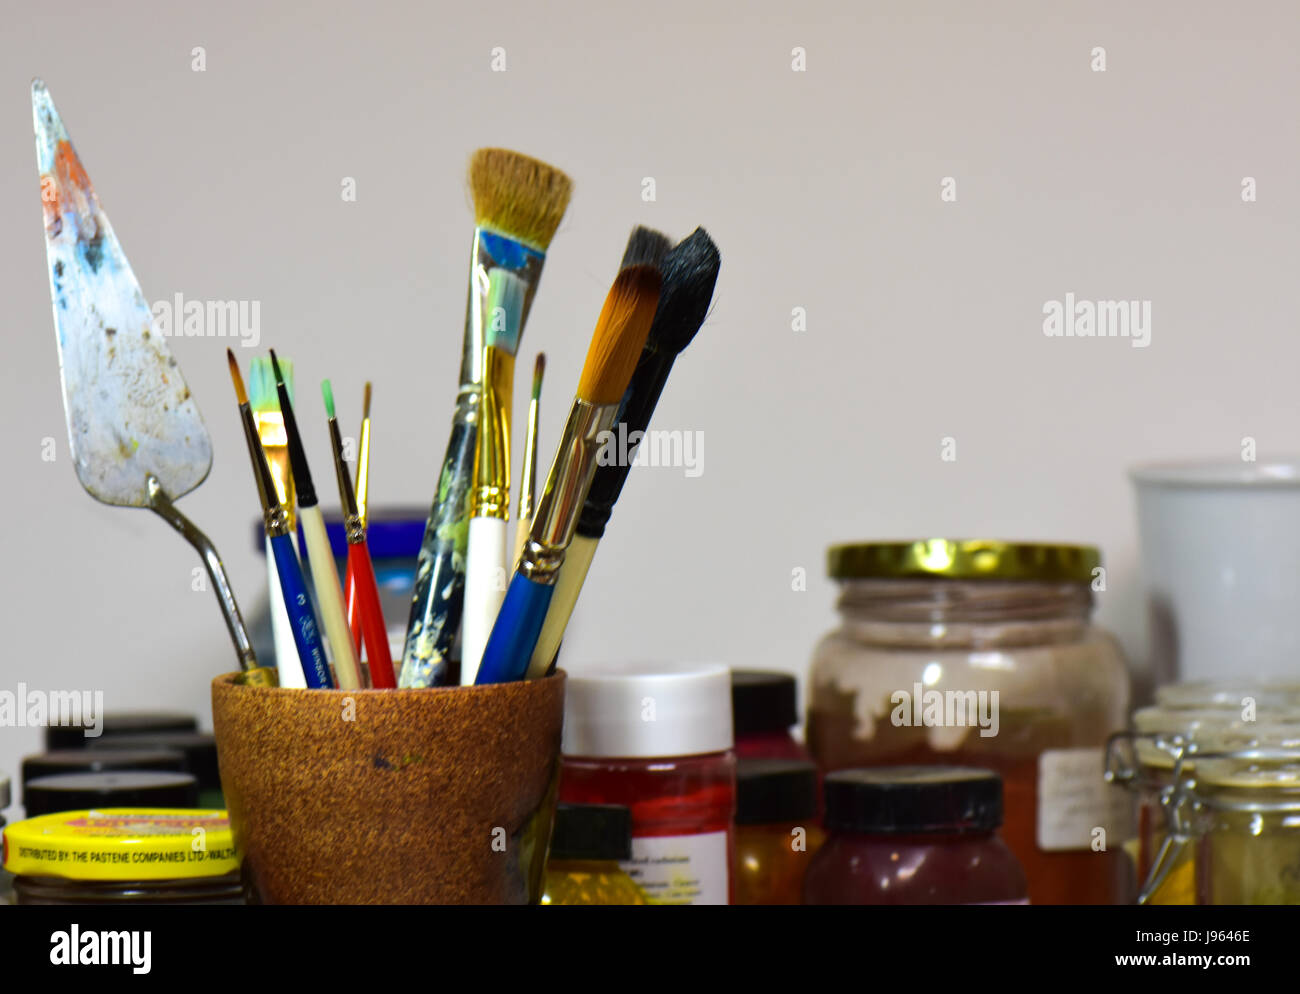 Multicolored brushes and paints in an artists' studio. - Stock Image